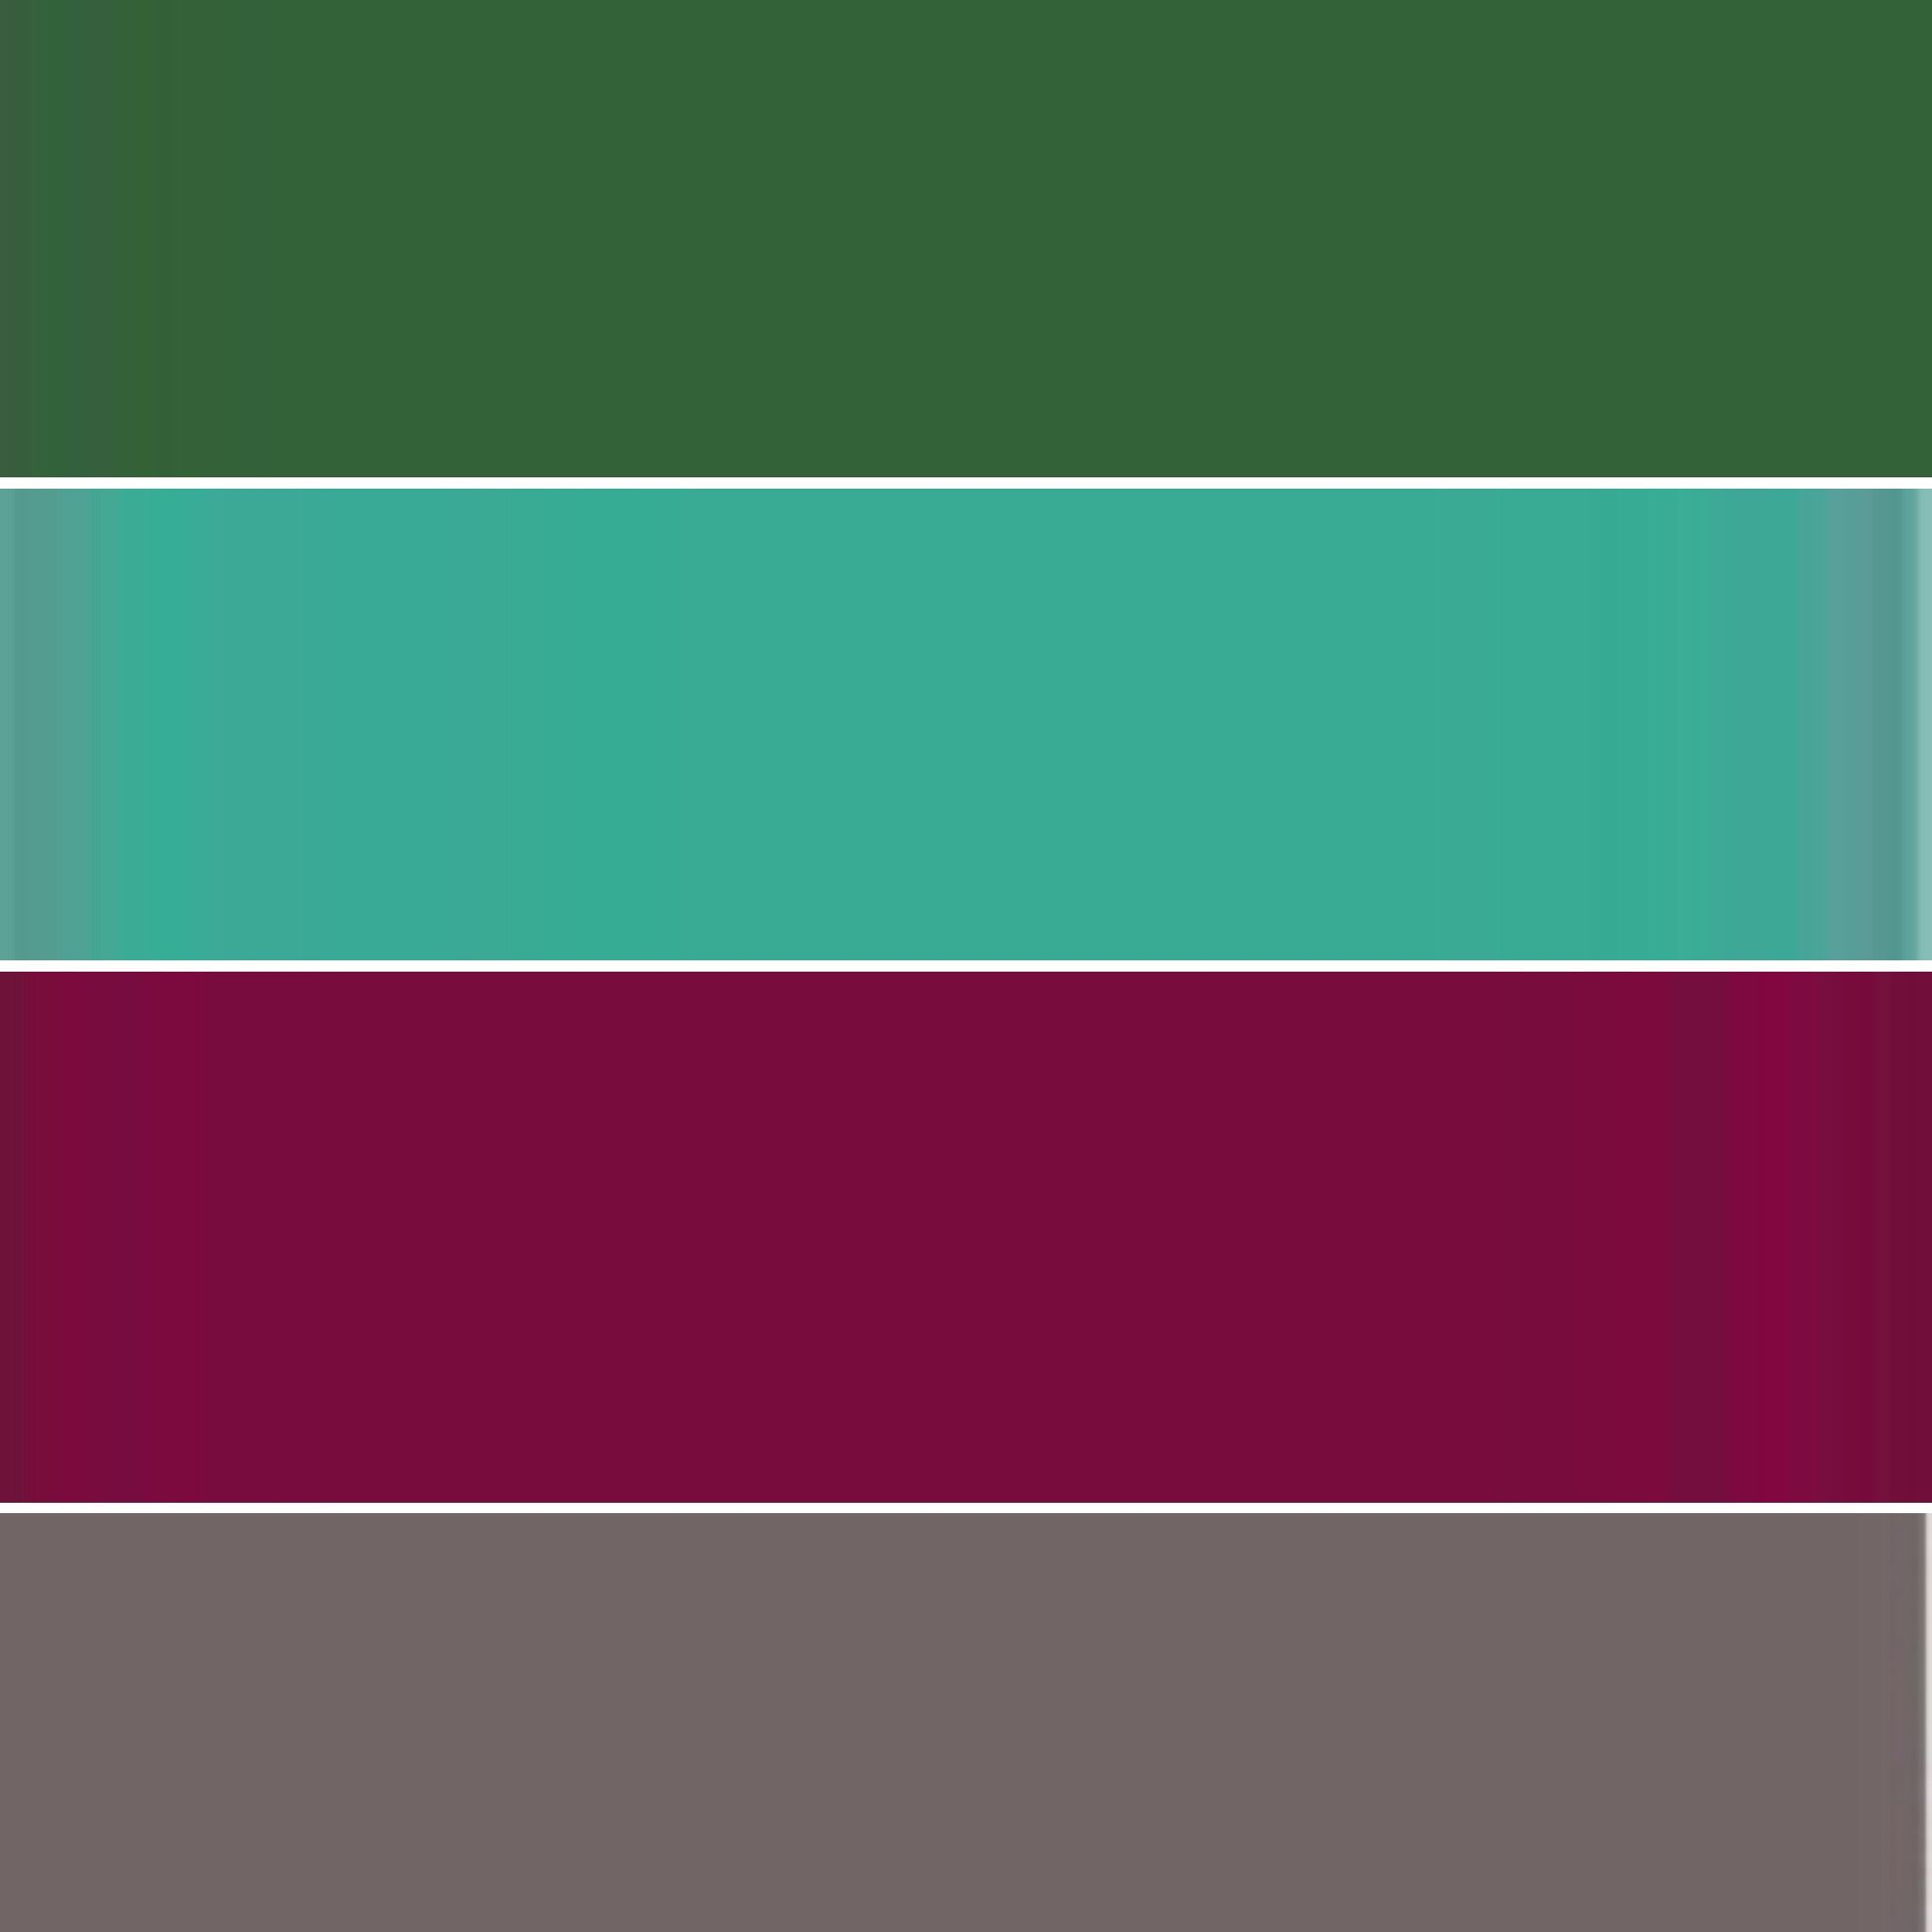 Maroon and blue wedding decor  My color palette Deep Green Sea Foam Maroon and Graphite